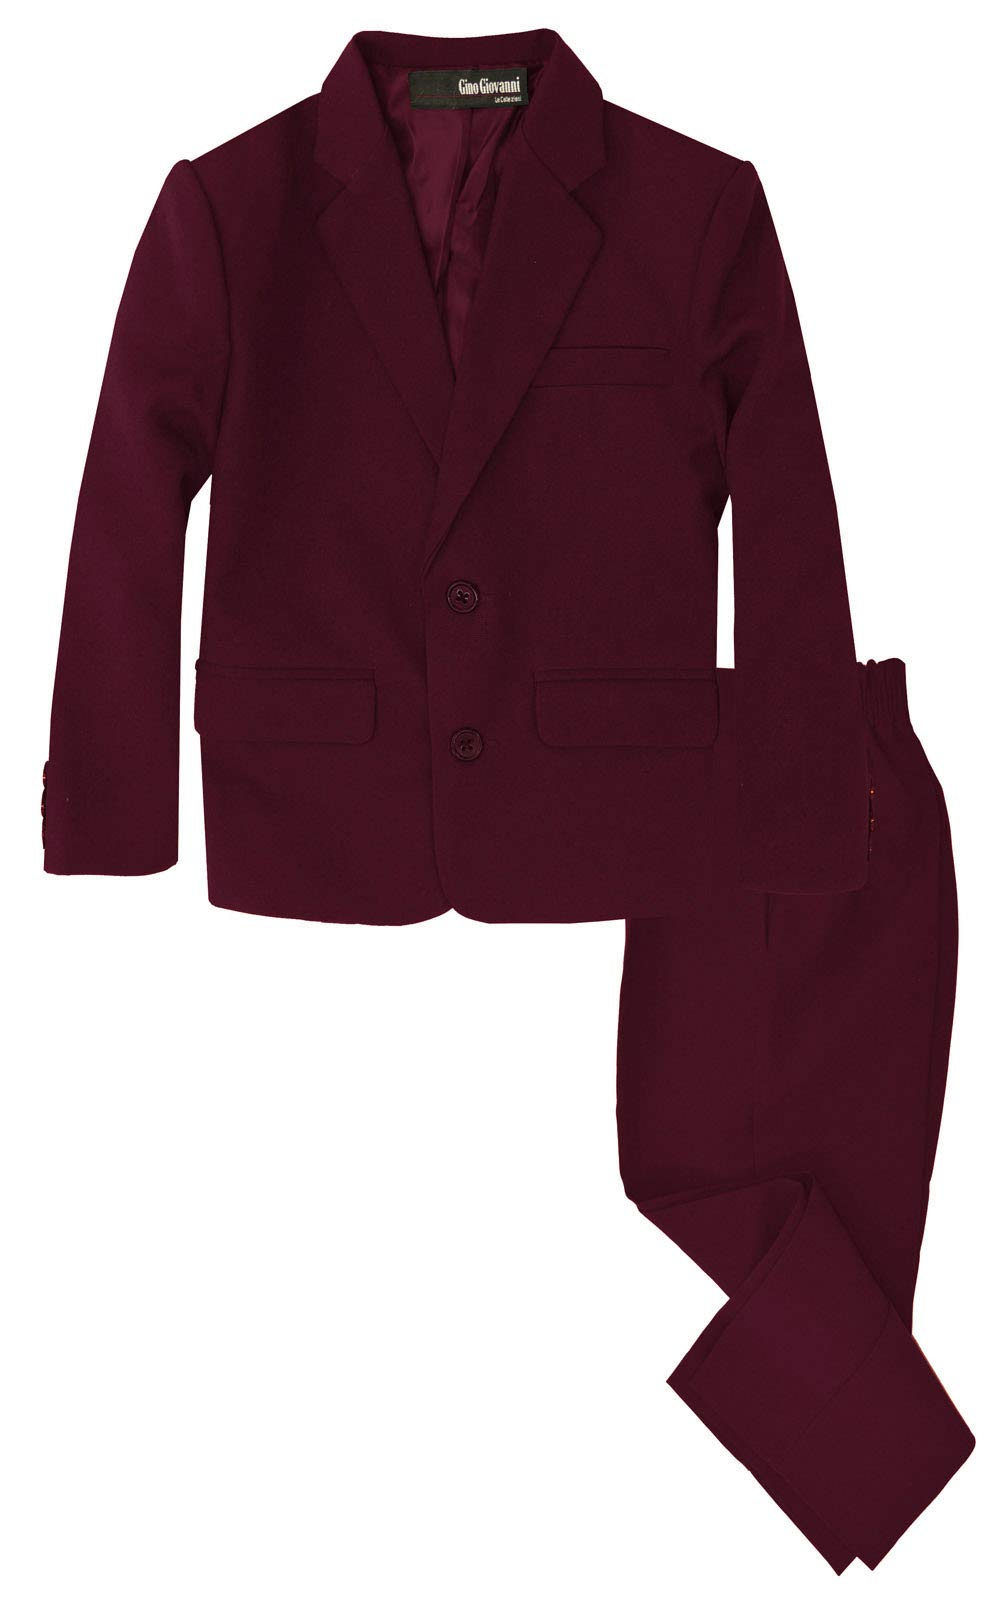 G218 Boys 2 Piece Suit Set Toddler to Teen (Burgundy, 2T)